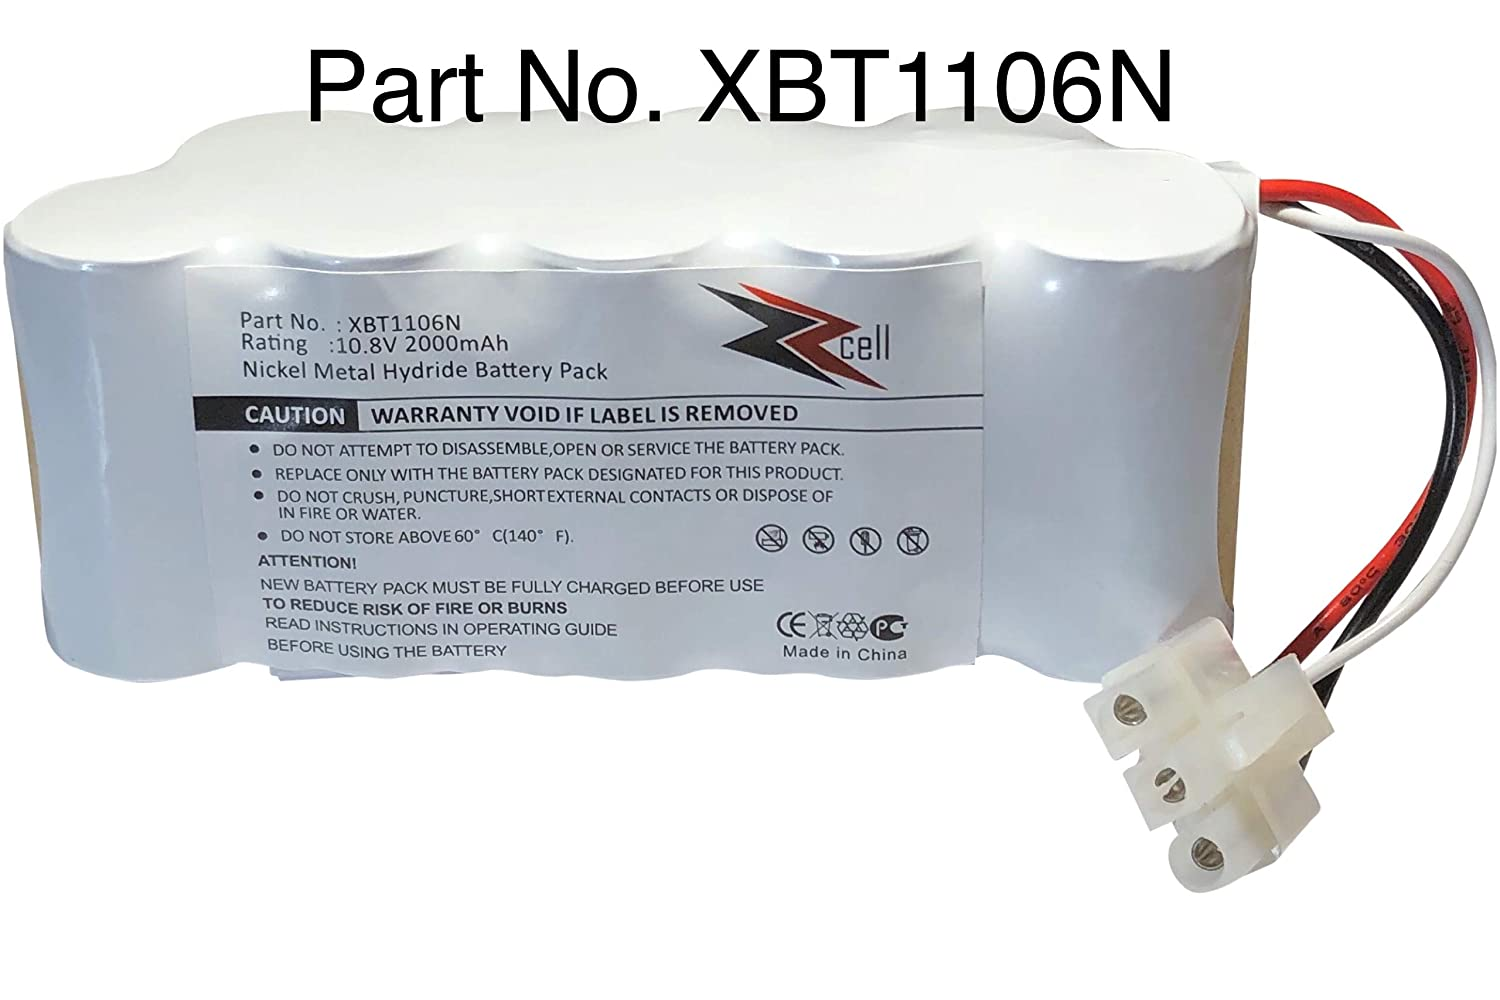 ZZcell Battery For Euro Pro Shark XBT1106N Navigator Freestyle SV116N, SV1106N Original Part Number XBT1106N (Please check)